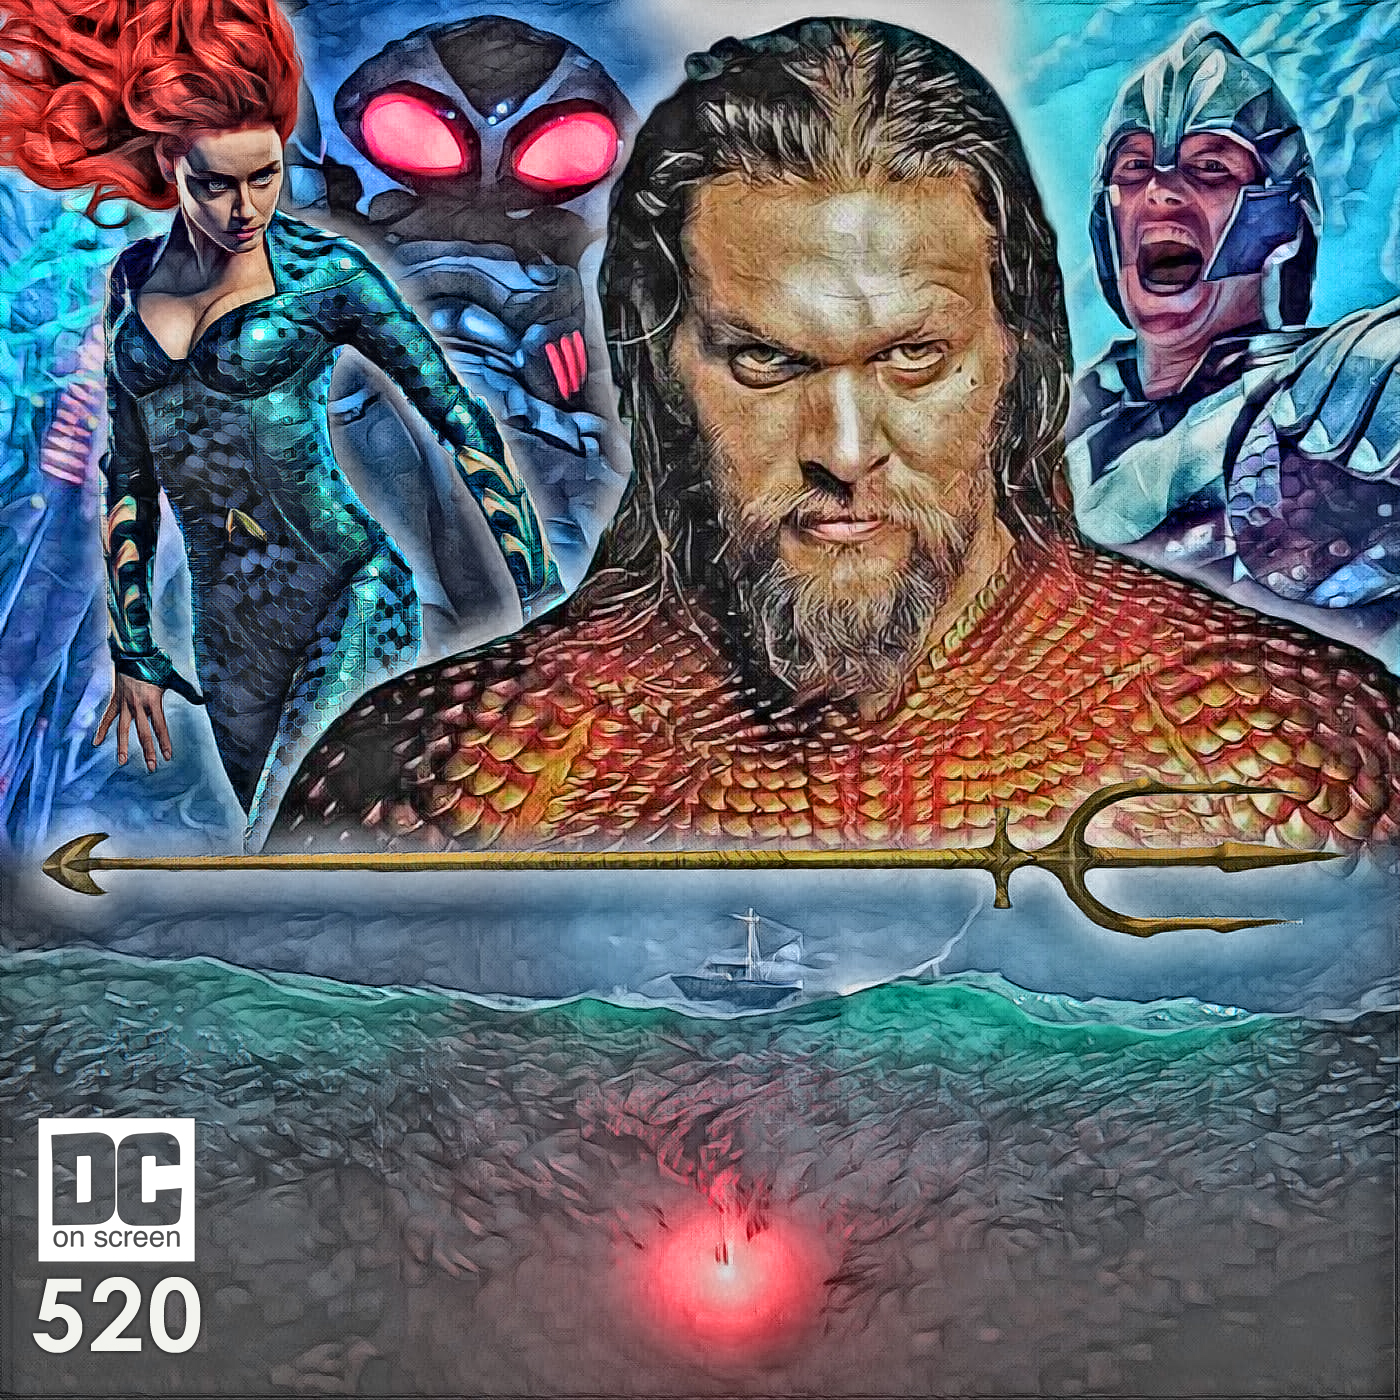 Dc On Screen Podcast Aquaman Review